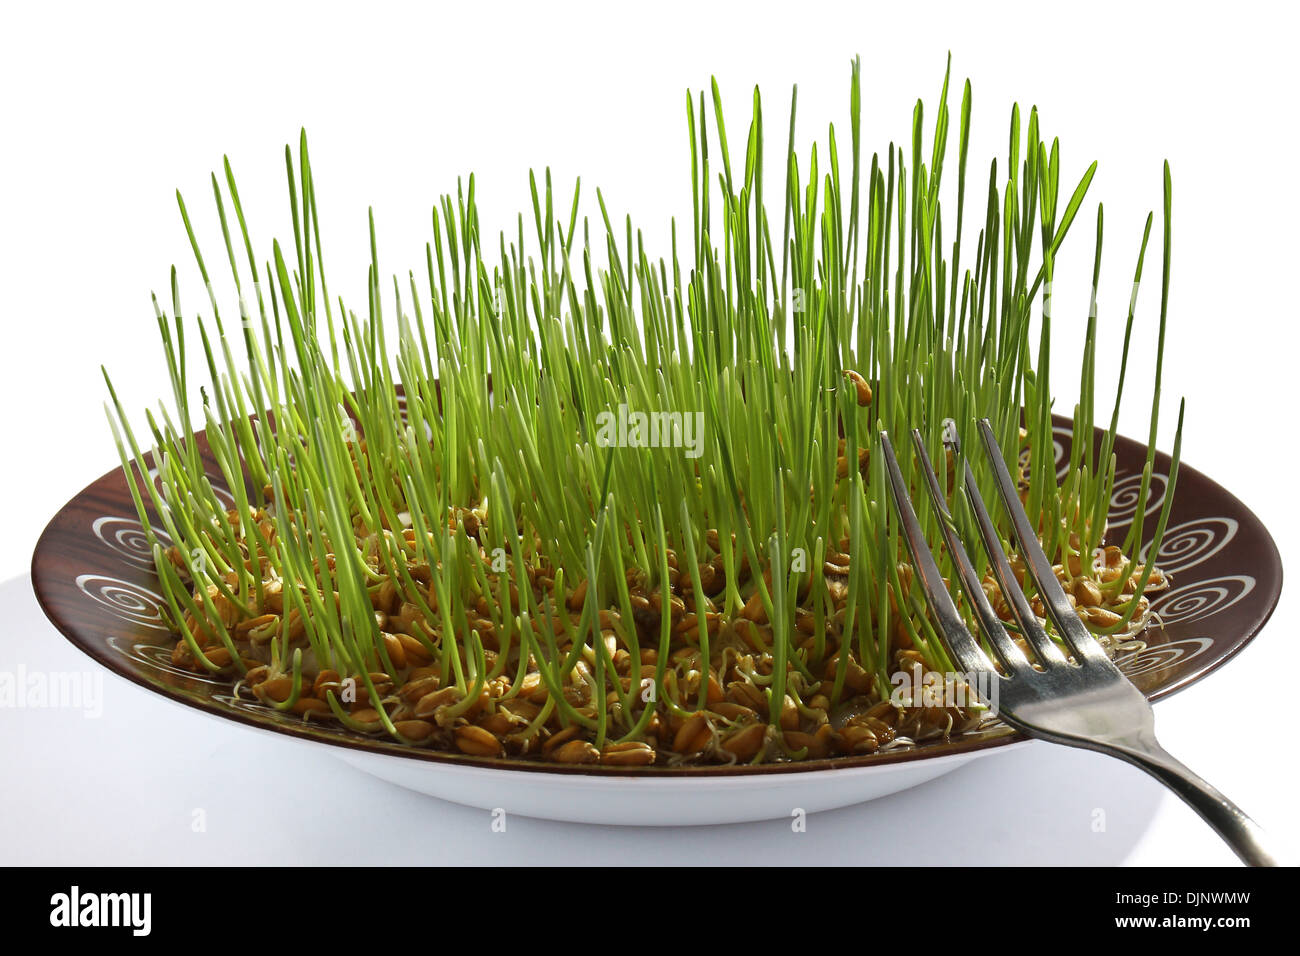 wheat germ in bowl on white background - Stock Image